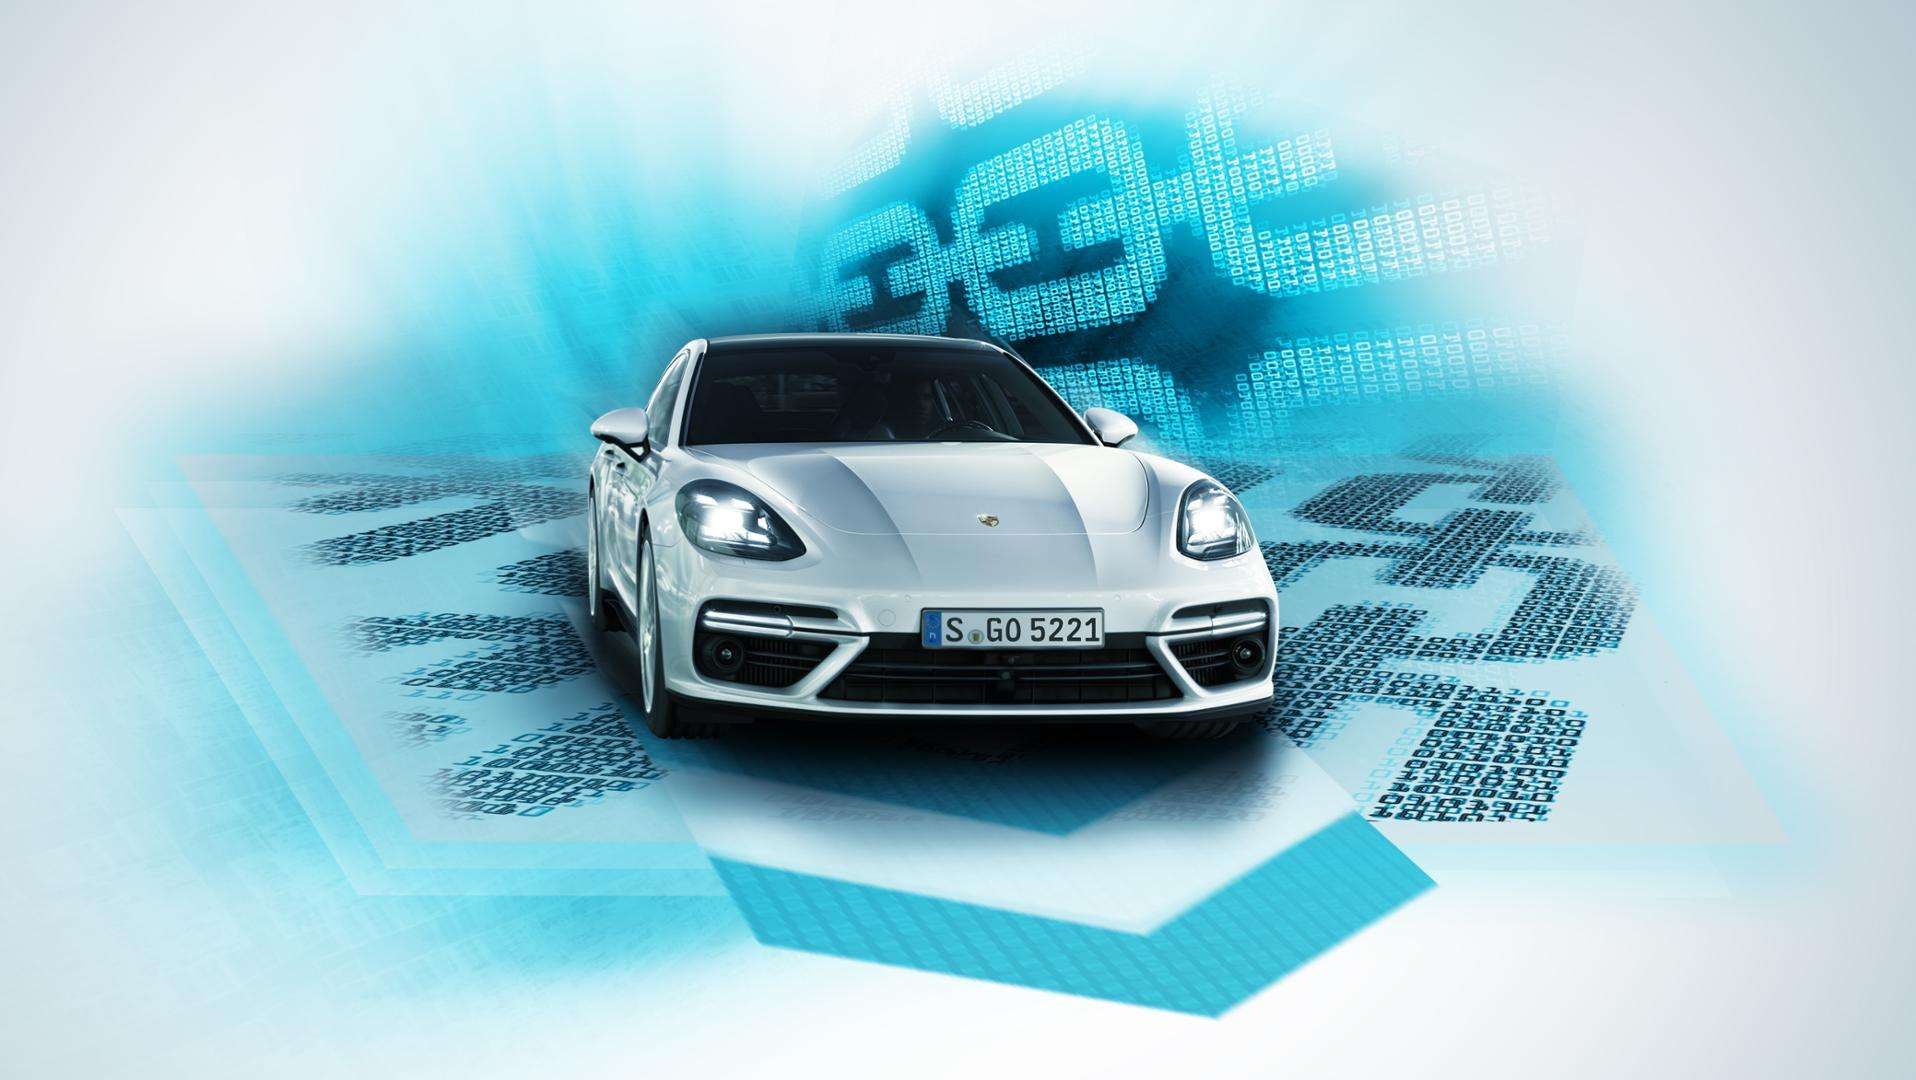 Porshe and blockchain technology